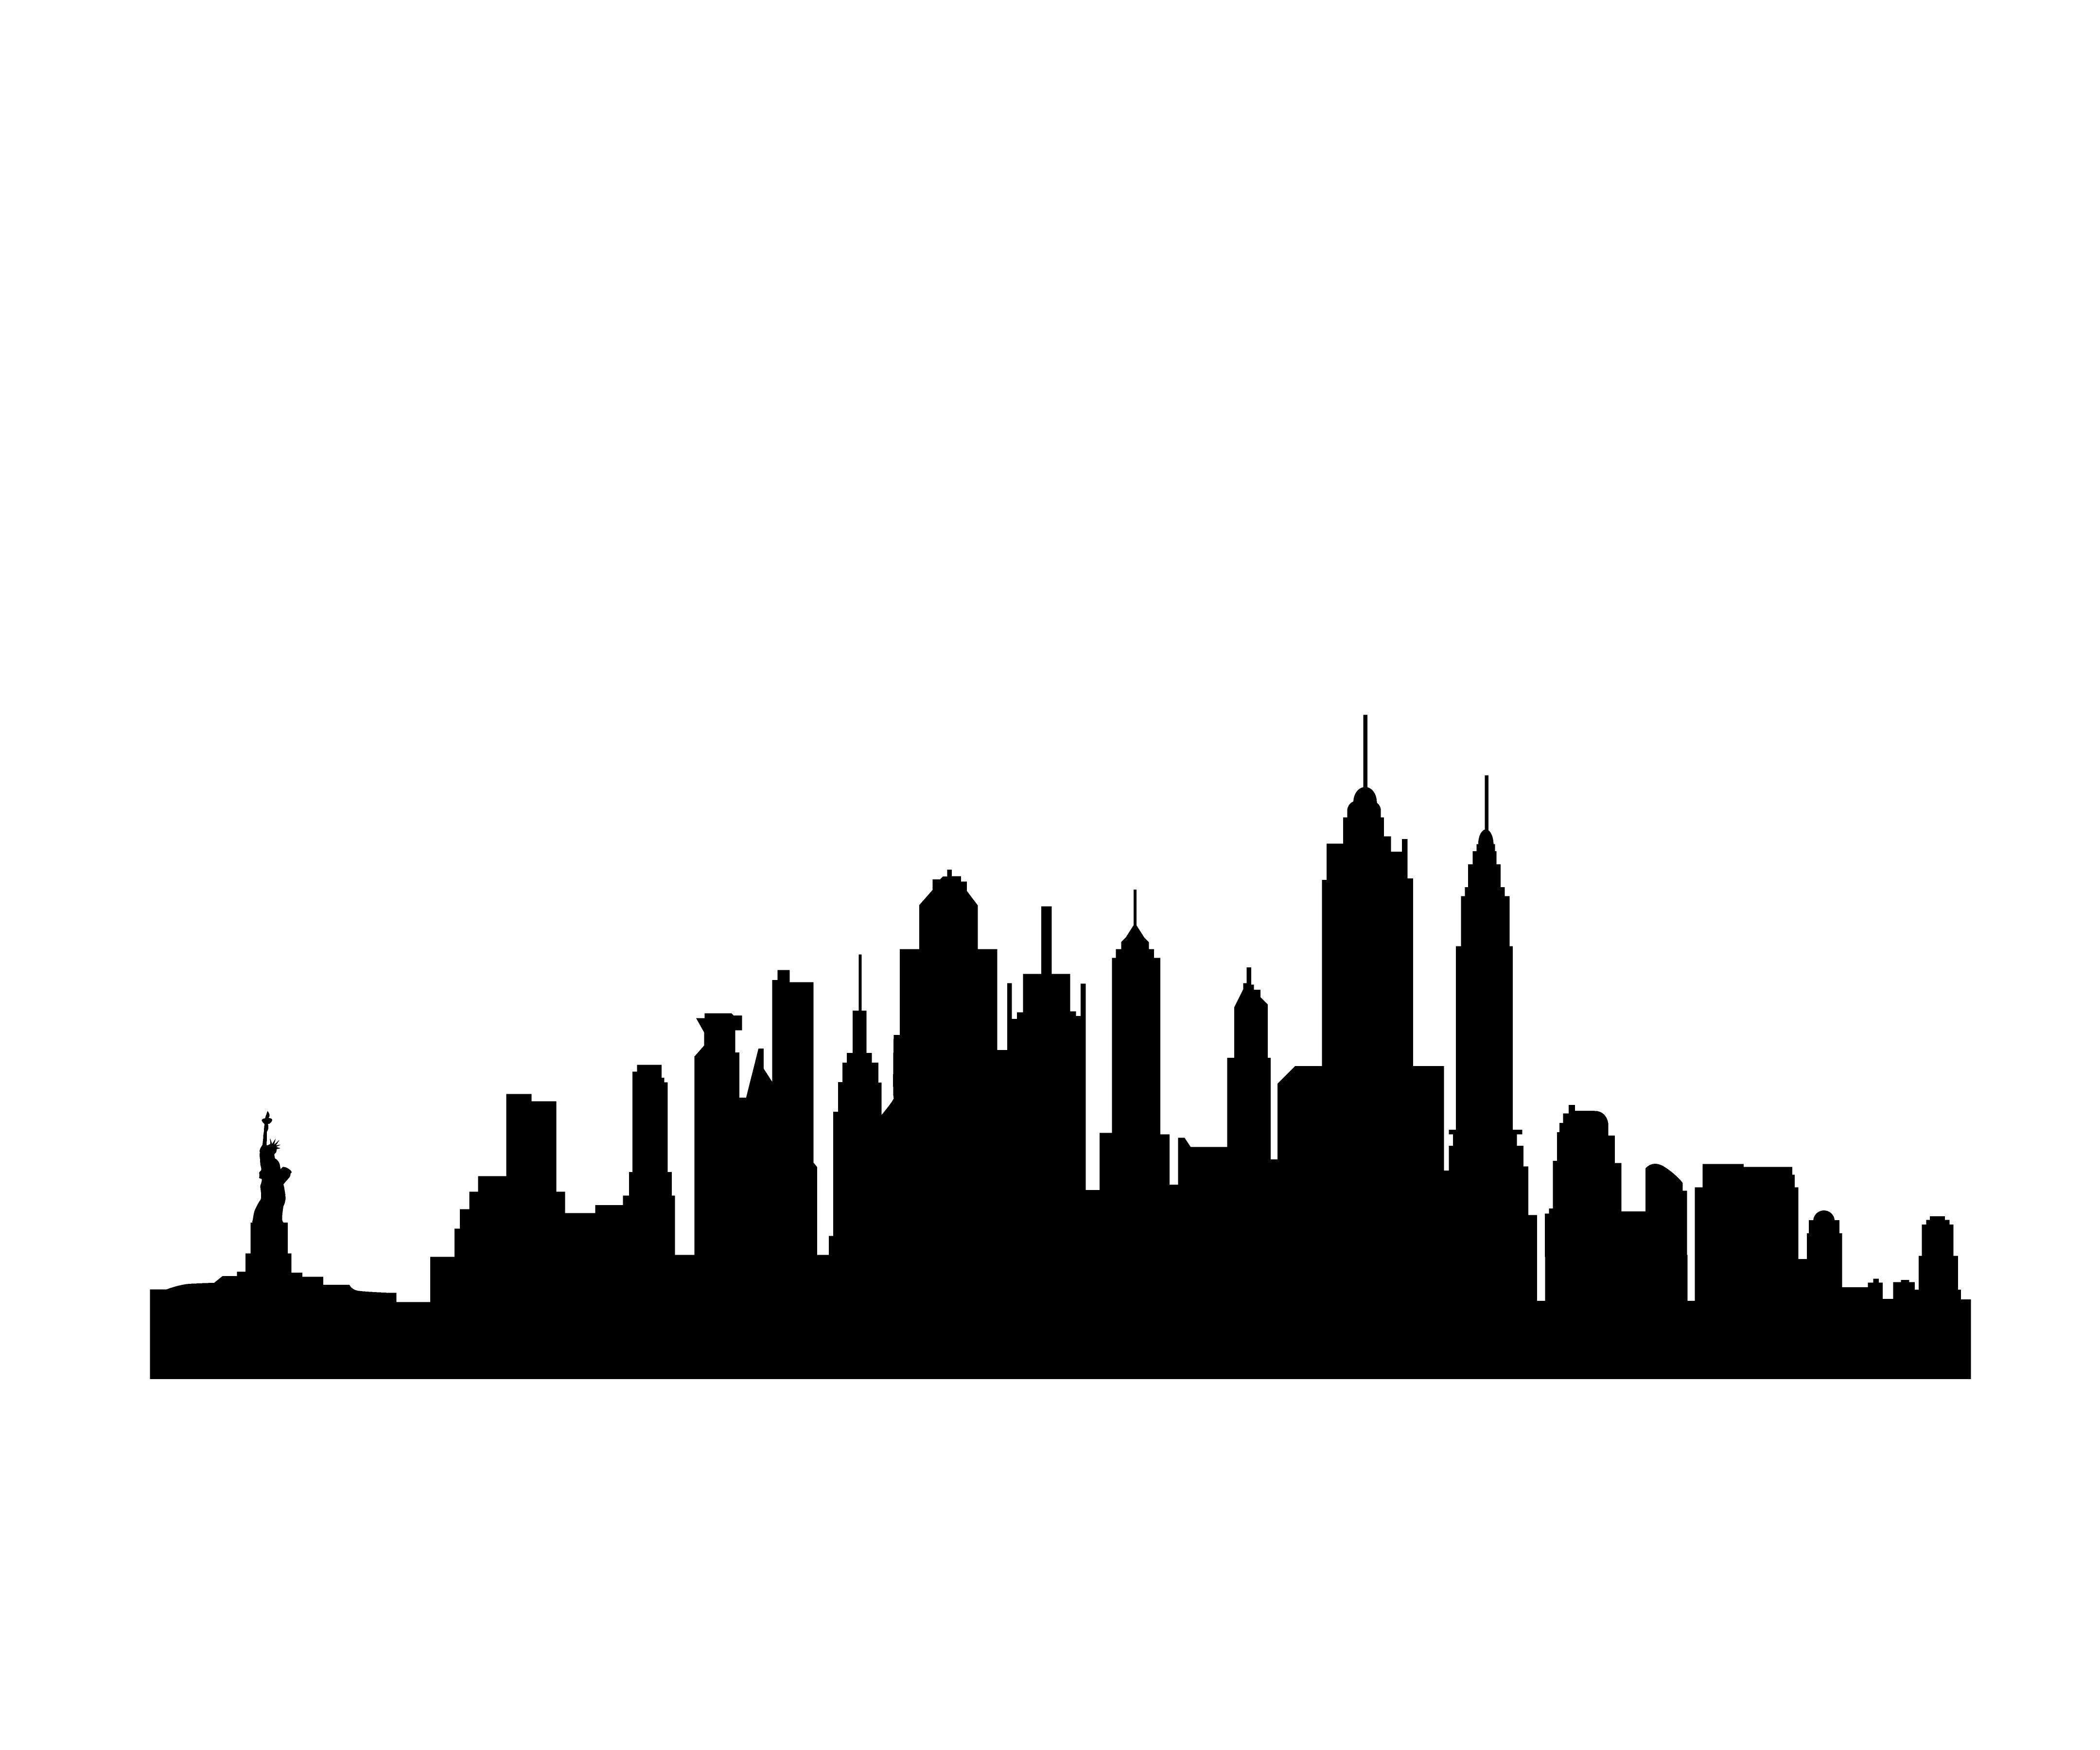 New york city illustration clipart picture royalty free library Skyline Silhouette - ClipArt Best | Spiderman | Inspiração para ... picture royalty free library